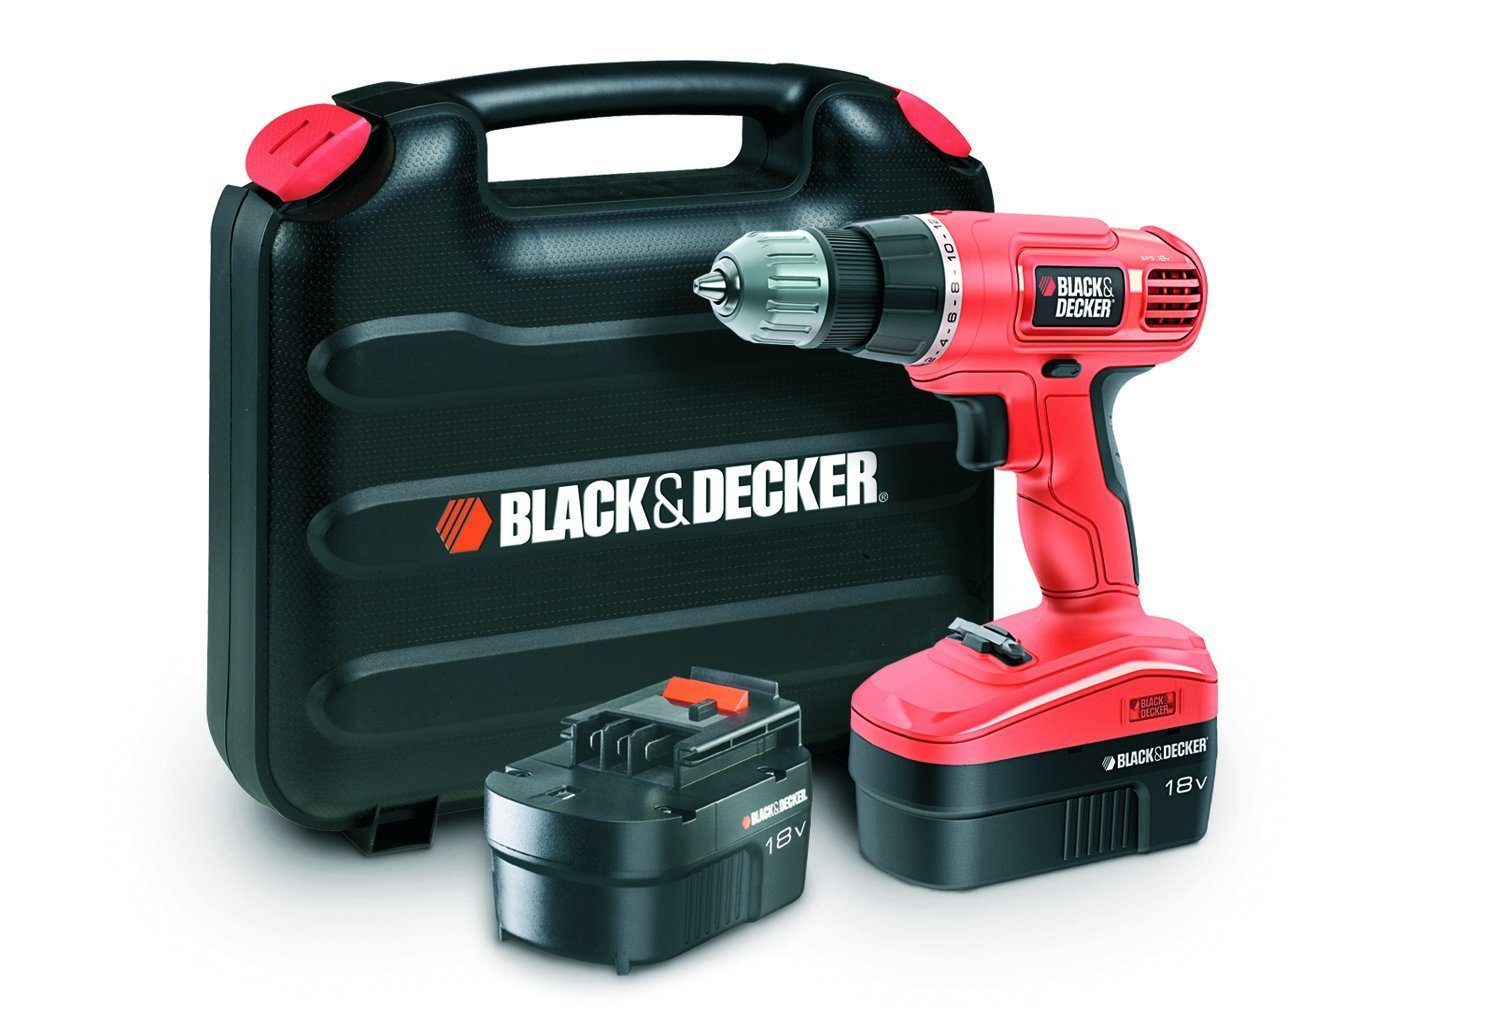 Batterie perceuse black decker 18v - Perceuse black et decker 18v ...